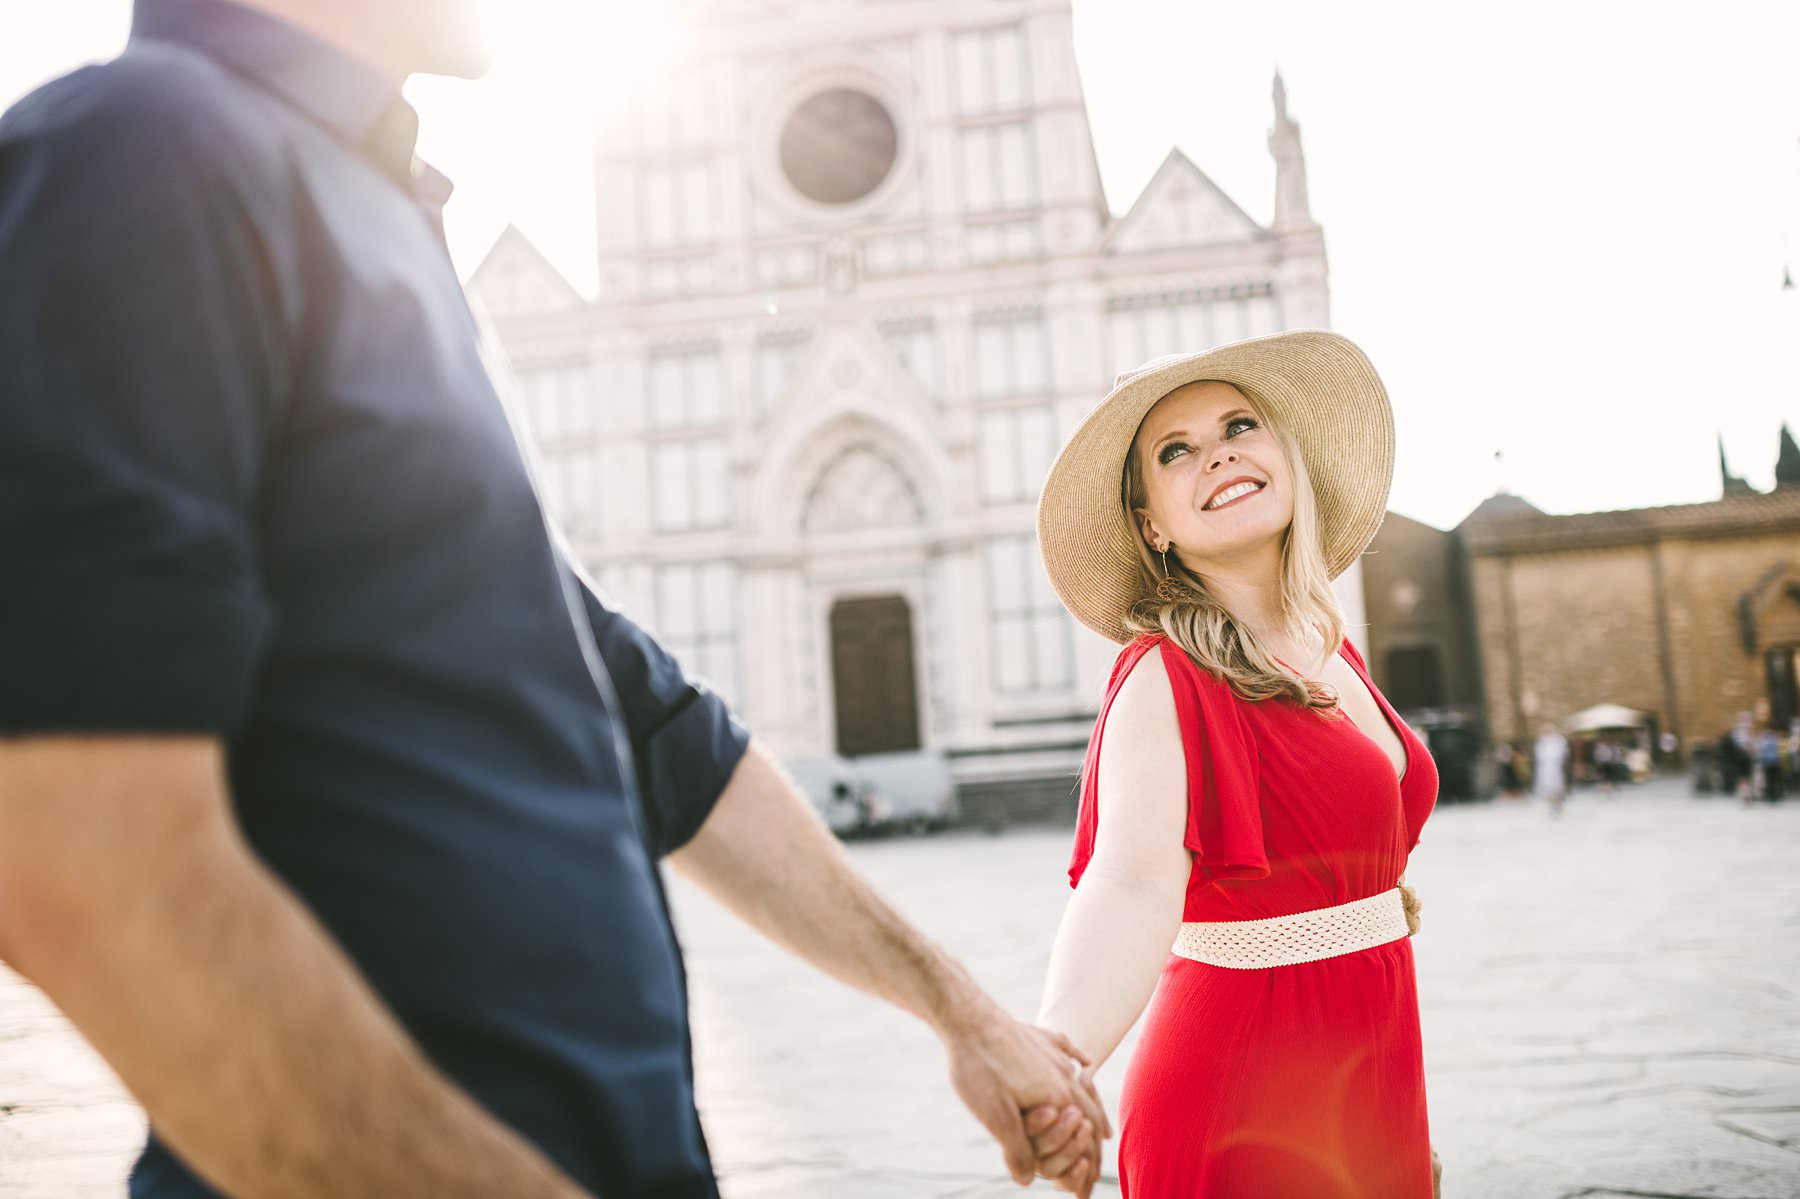 Anniversary photos in Florence: soft as sunrise, red as passion. A beautiful frame, a delicate light, a bright red dress, a milestone to celebrate: these were the ingredients of Anisa and Kevin's anniversary photos, taken in Florence at sunrise. Just like in a dream, they had the whole city to themselves and they could enjoy every little moment of the experience